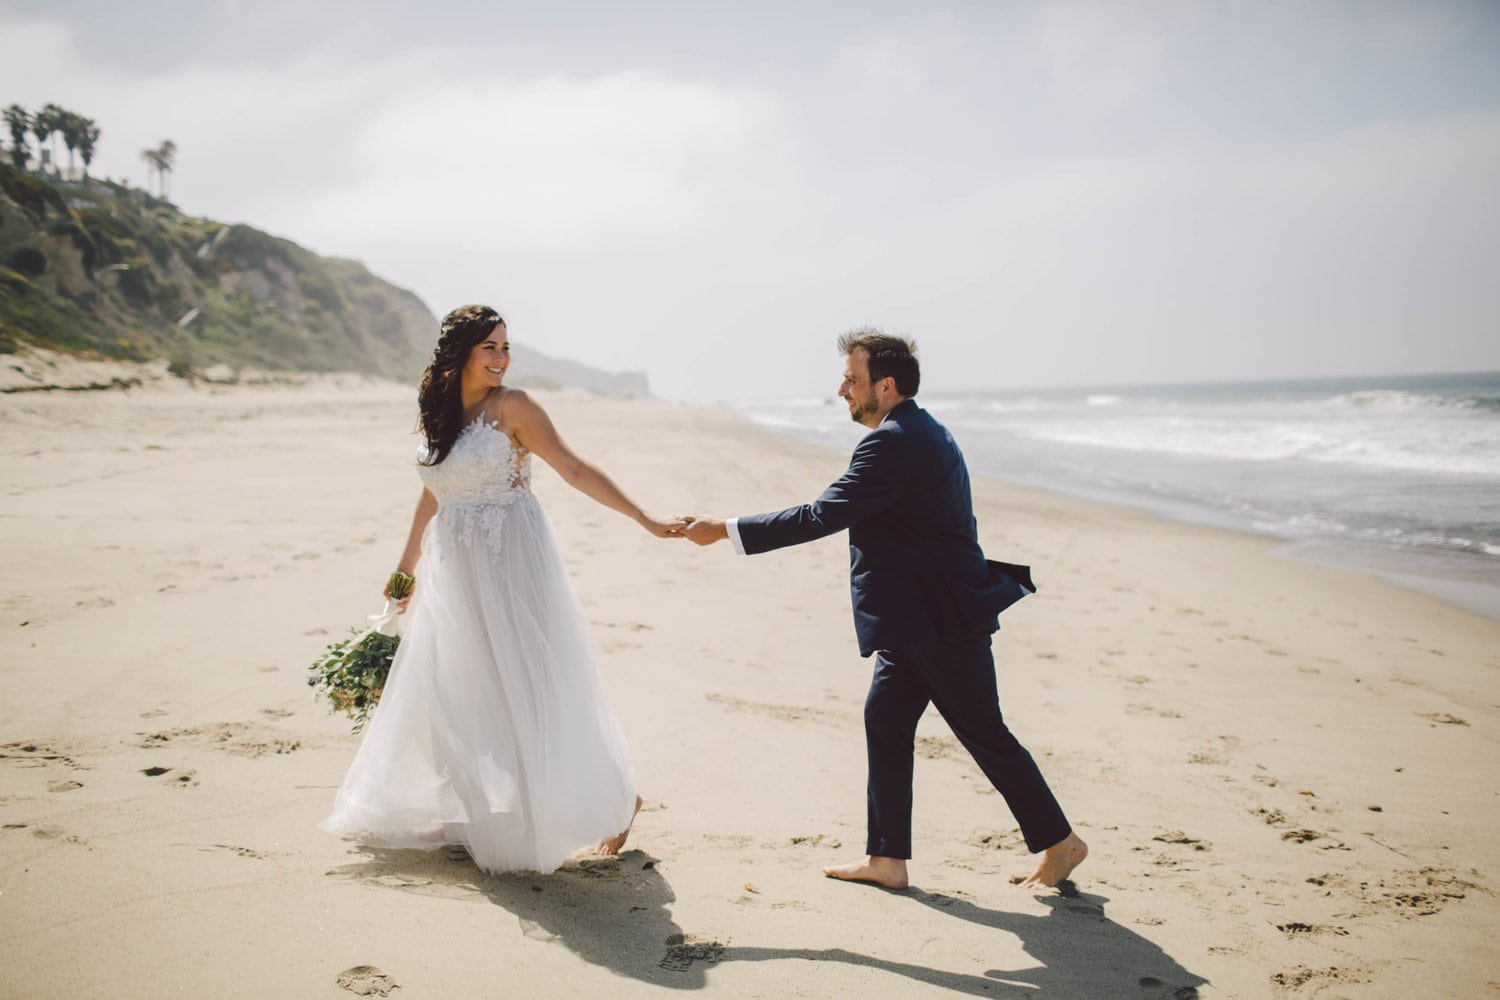 A couple walk together, at the beach.